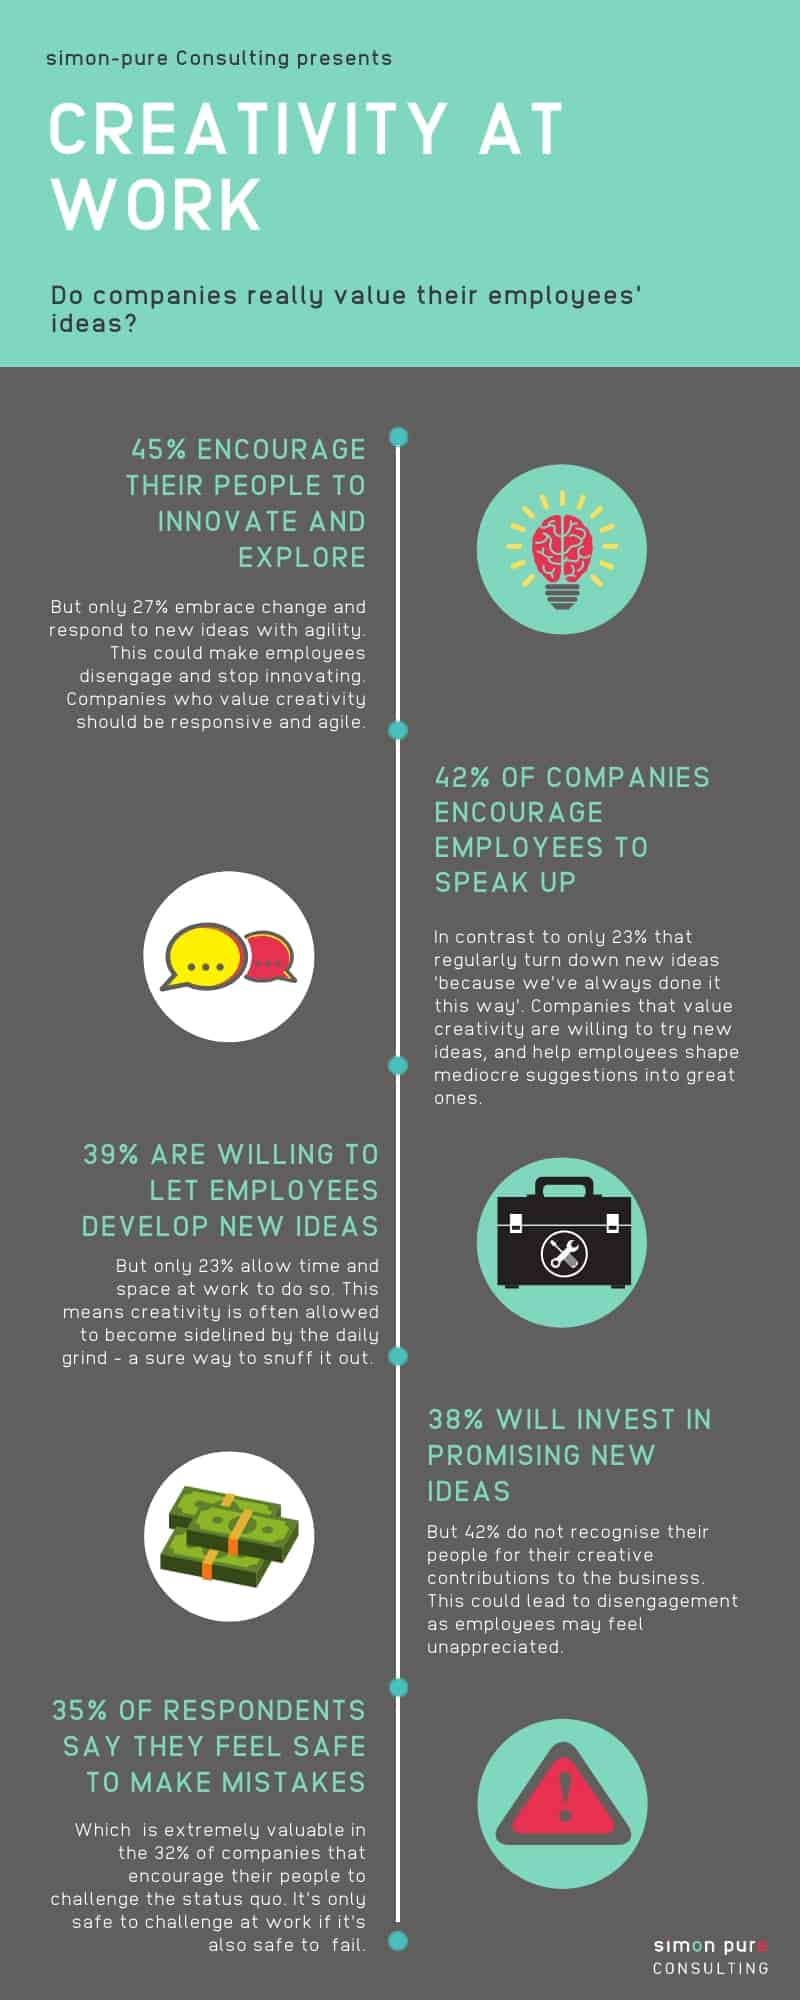 Creativity at work info graphic showing 45% of companies encourage innovation, 42% encourage people to speak up, 39% allow employees to develop new ideas, 38% will invest in ideas and 35% allow employees to make mistakes without fear of punishment